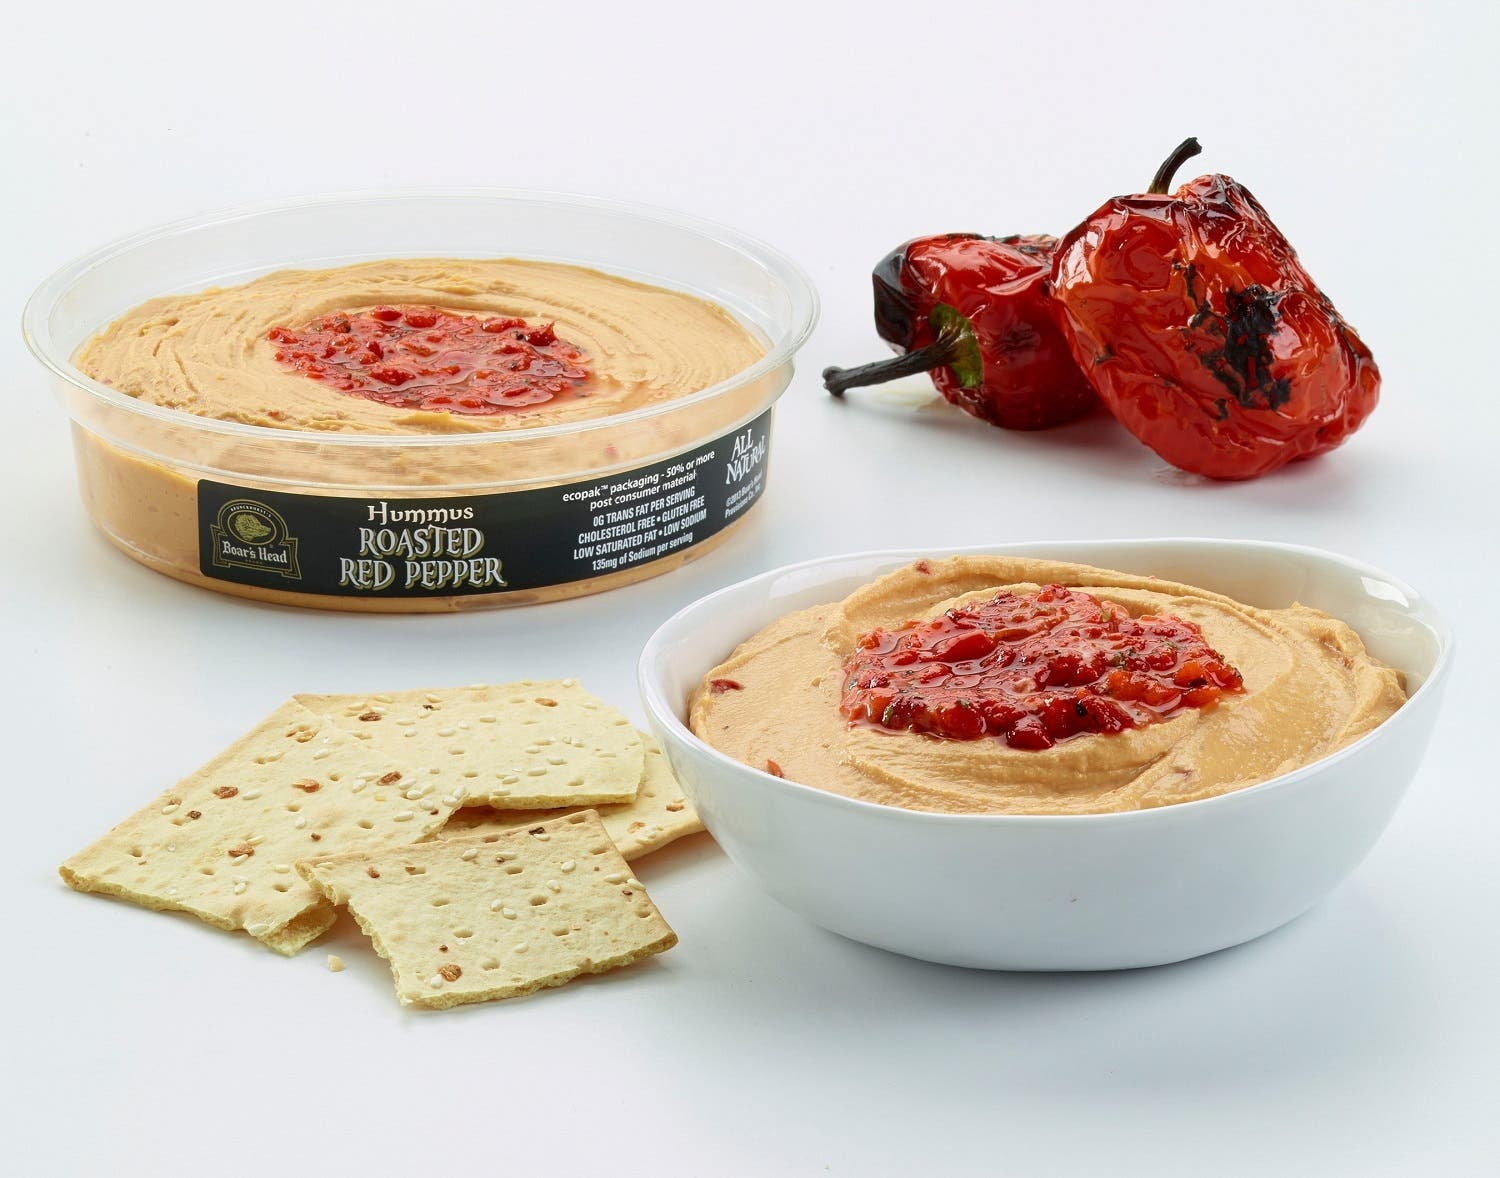 gluten free and all natural hummus is available nationwide in the U.S. (AP)